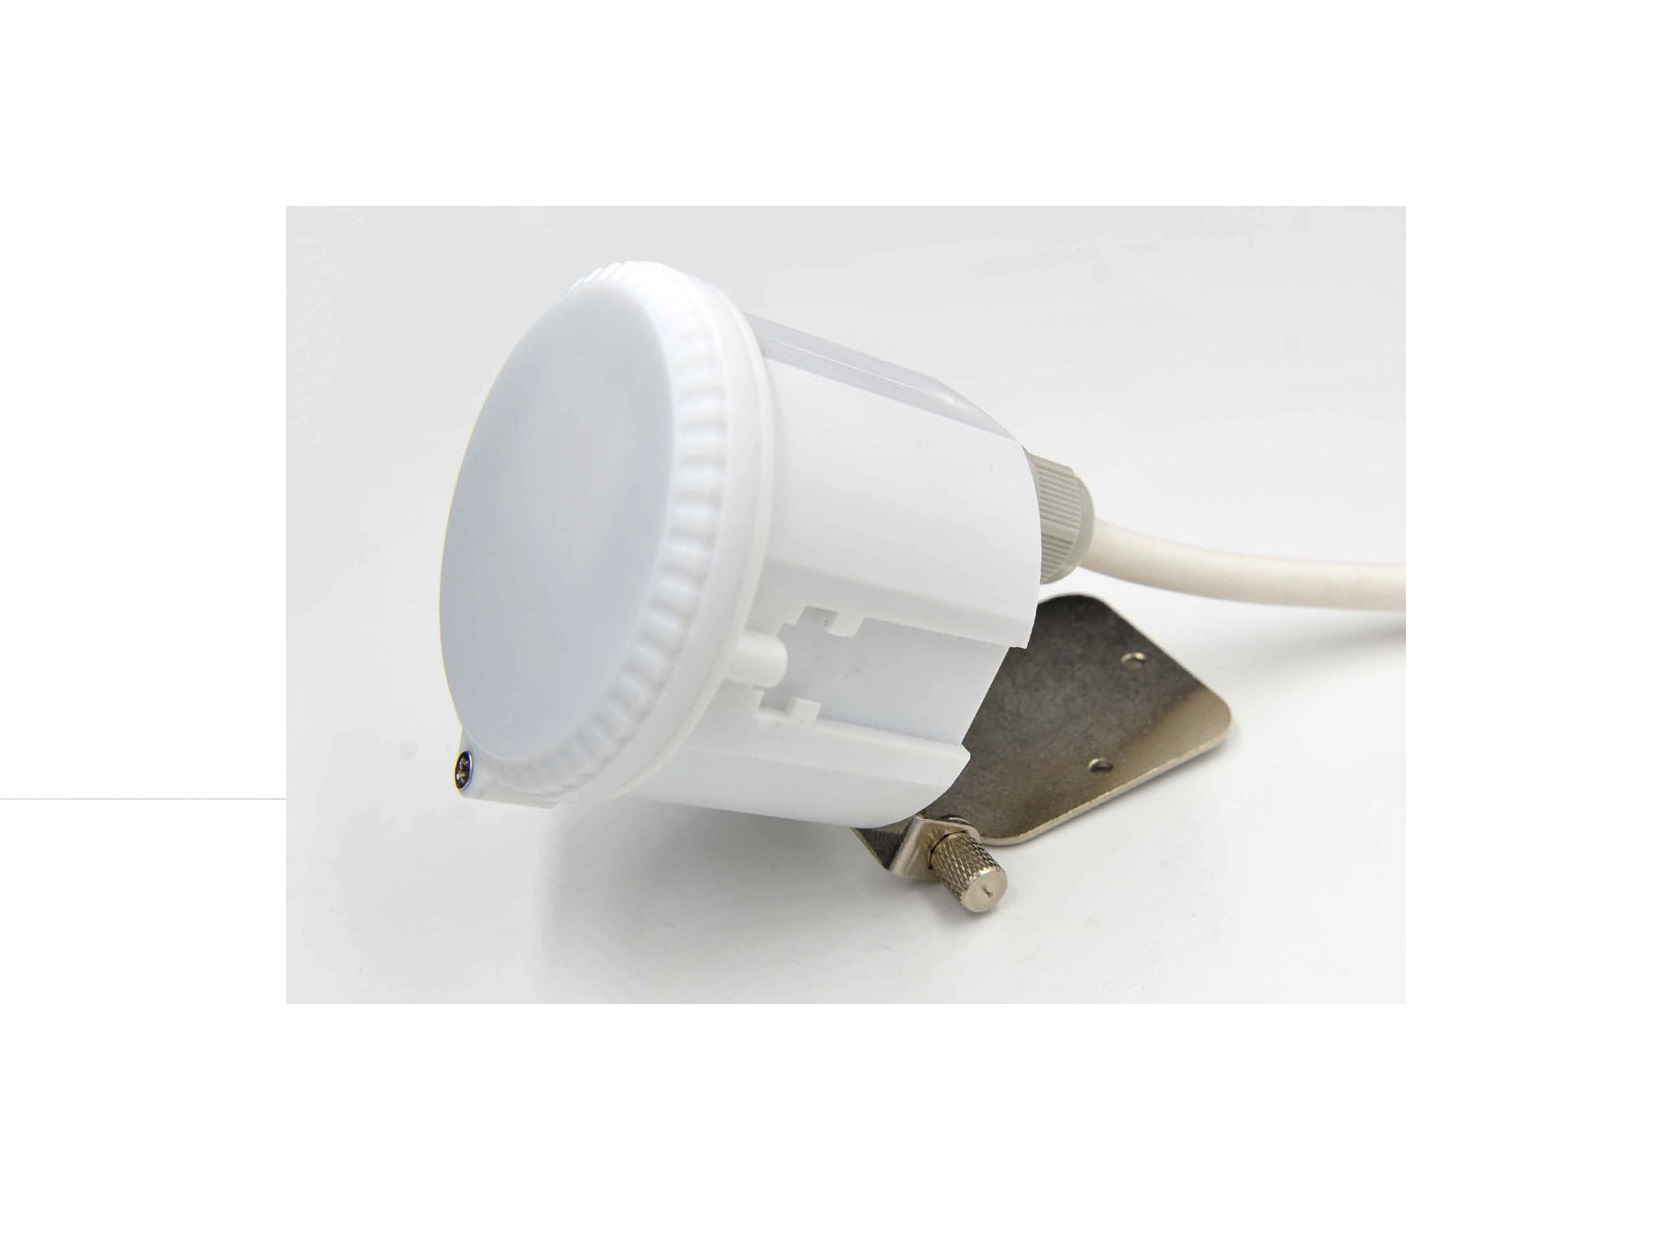 Everwatt Ew031v Ip65 Step Down Dimming Motion Sensor